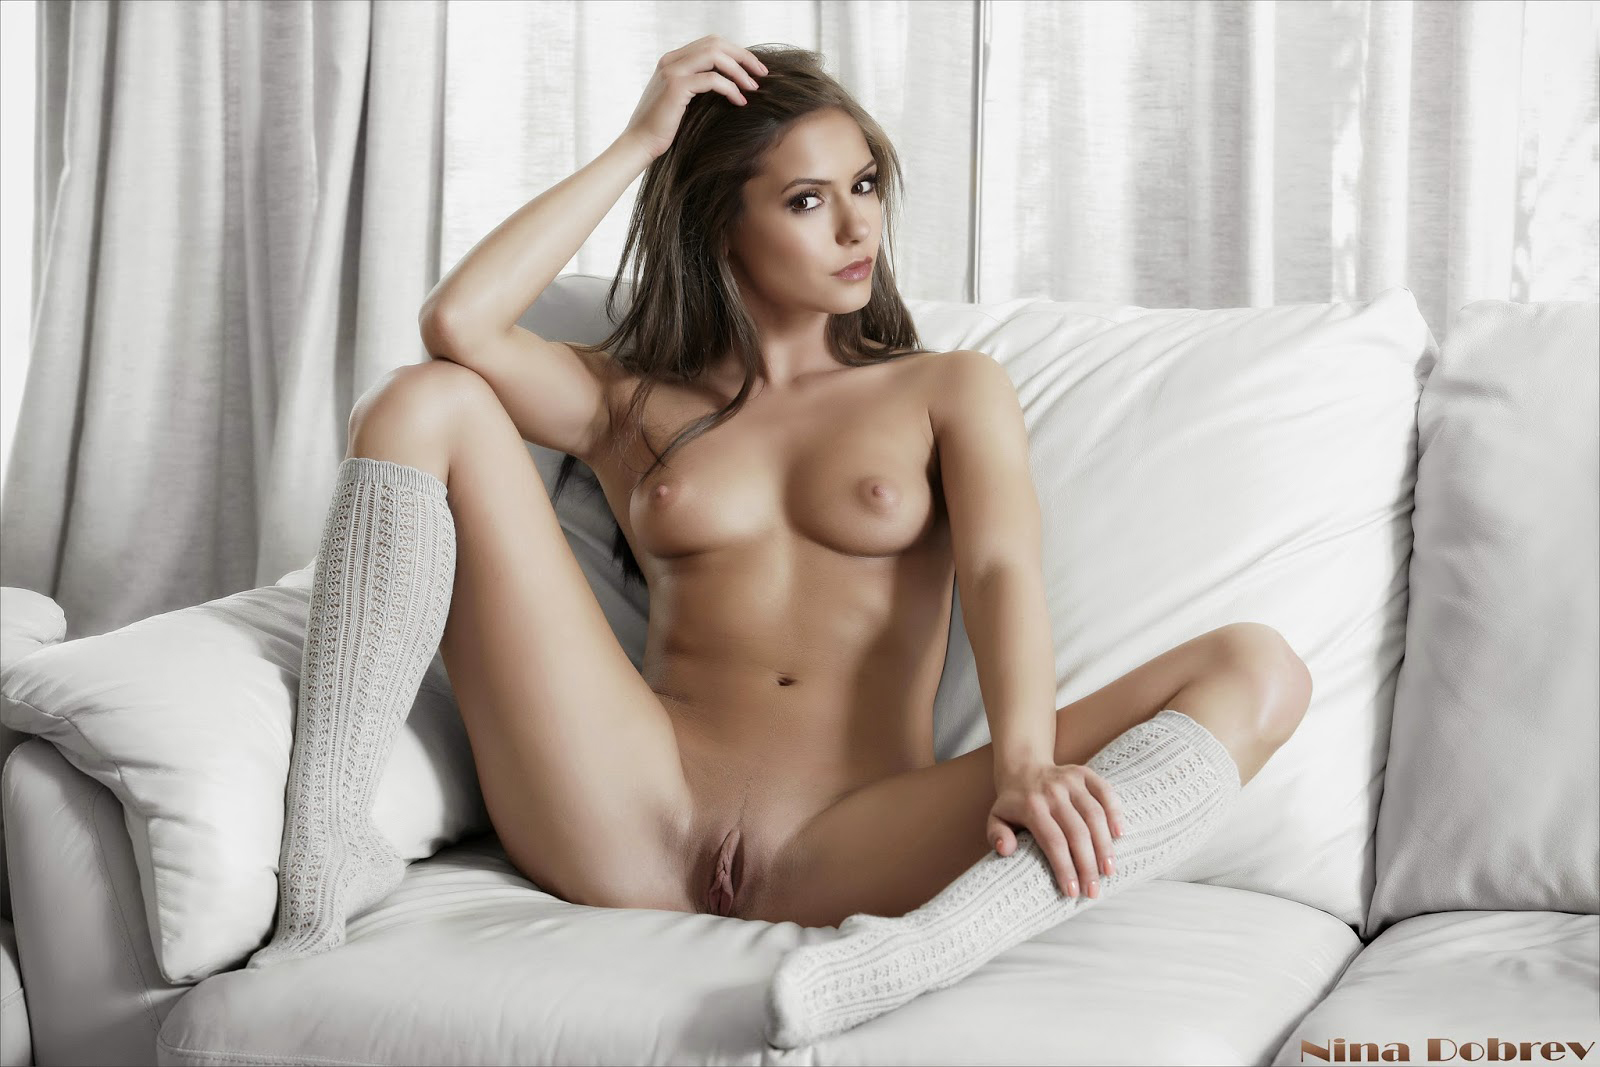 Nina-Dobrev-Nude-Showing-Her-Tits-Pussy